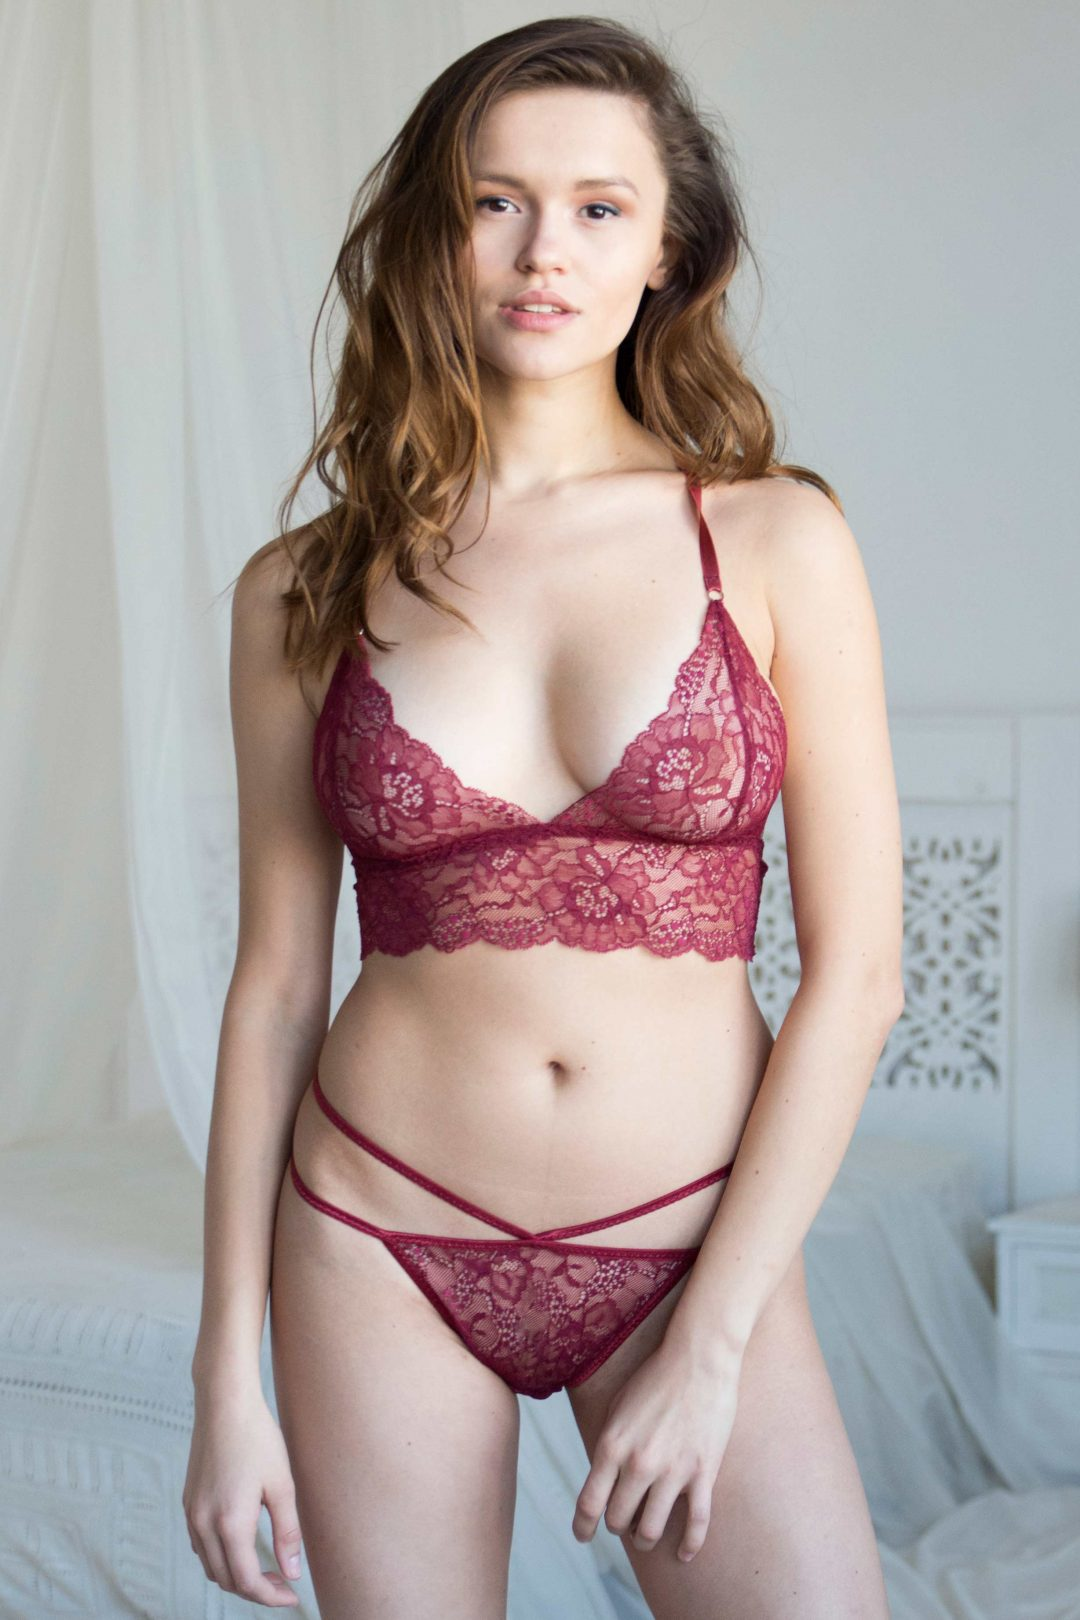 Burgundy see through longline lace unlined bralette bra & thong set with a strappy back picture | IDentity Lingerie UK